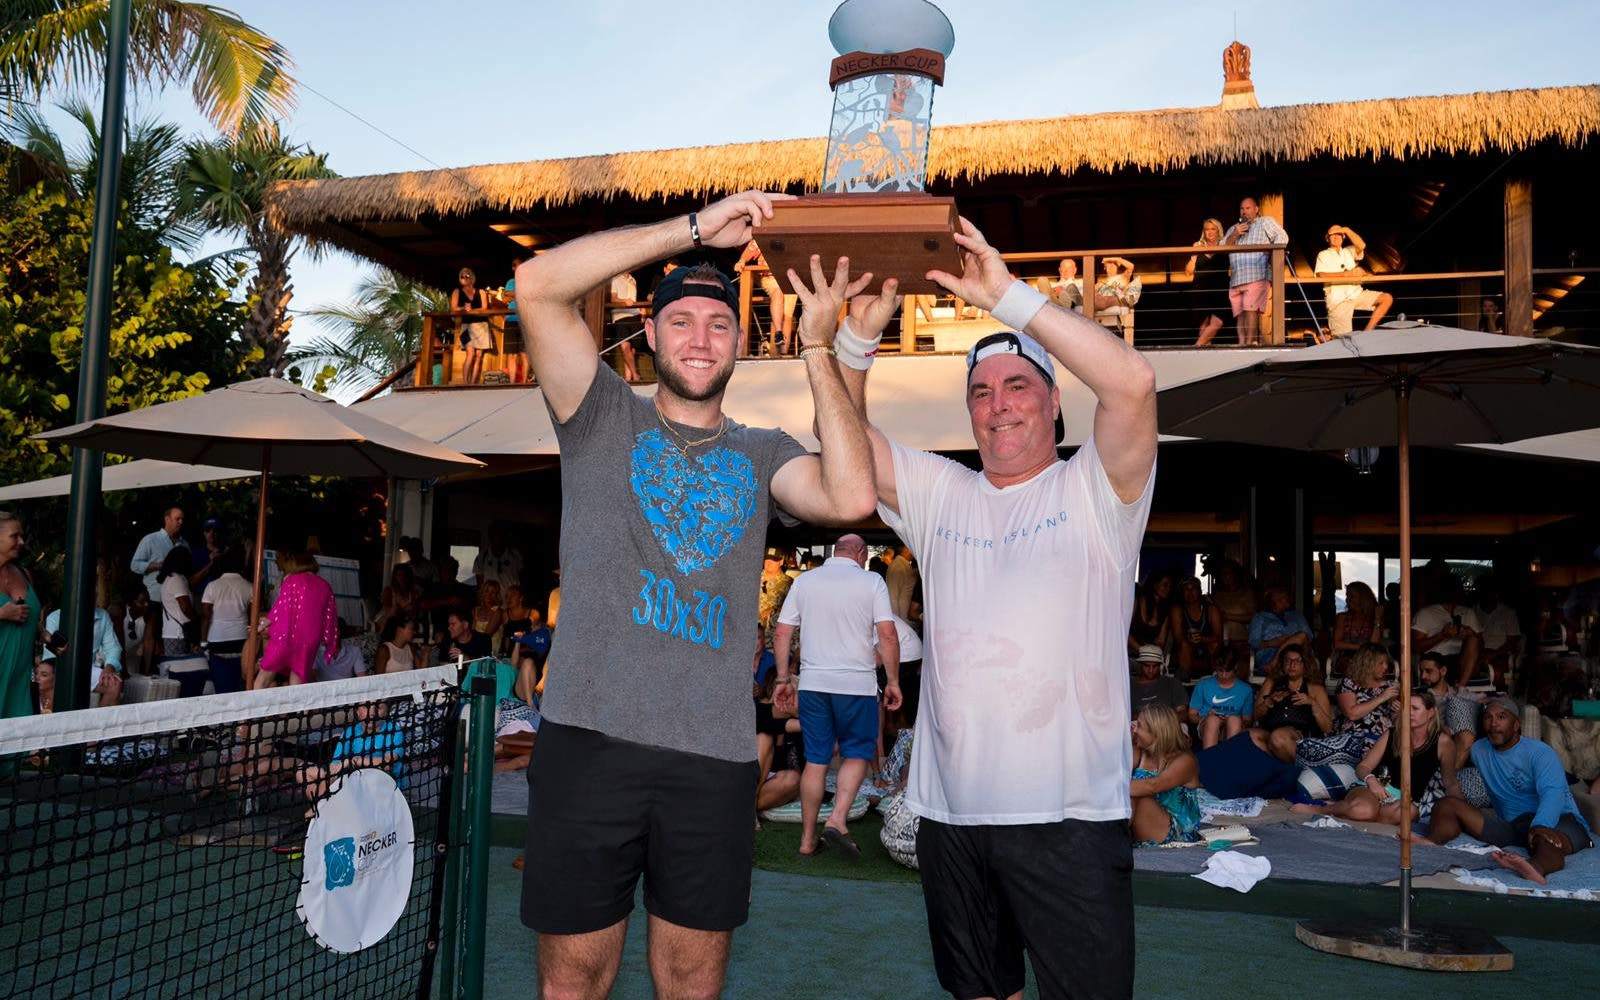 Michael Kosloske and Jack Sock celebrate winning the Necker Cup